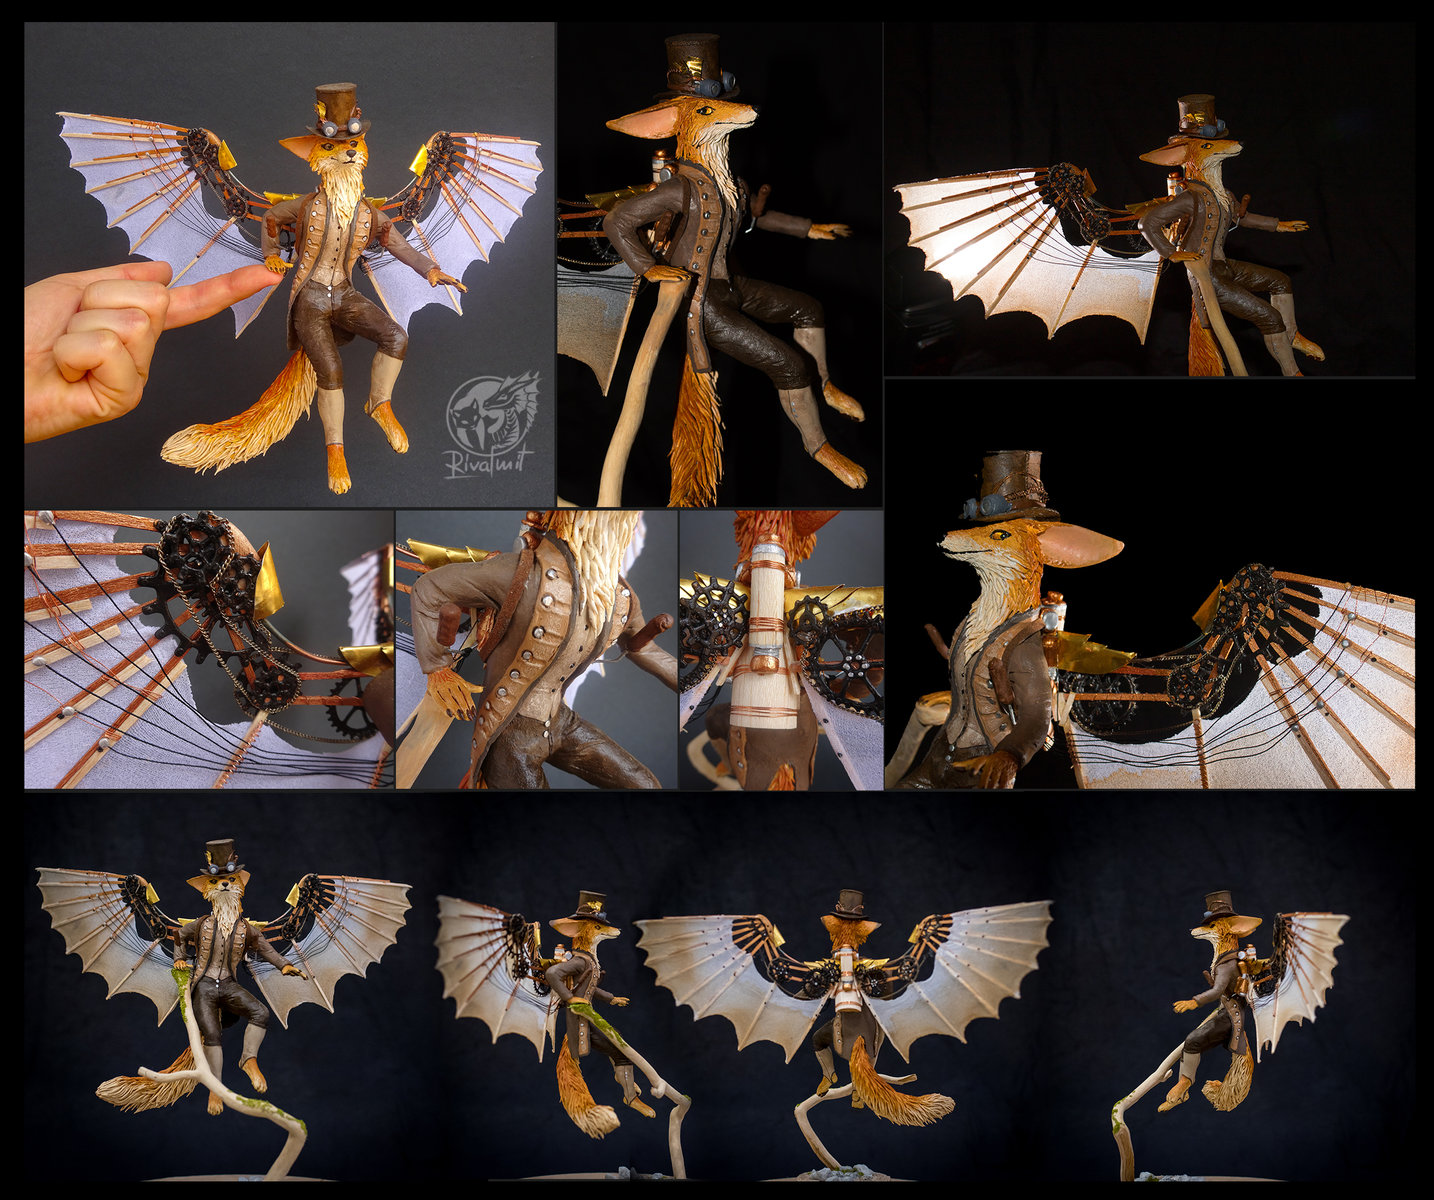 sculpture companion fox anthro anthropomorphic balaning steampunk Arcanum - A dream of wingless: Foxes with Flying Machines